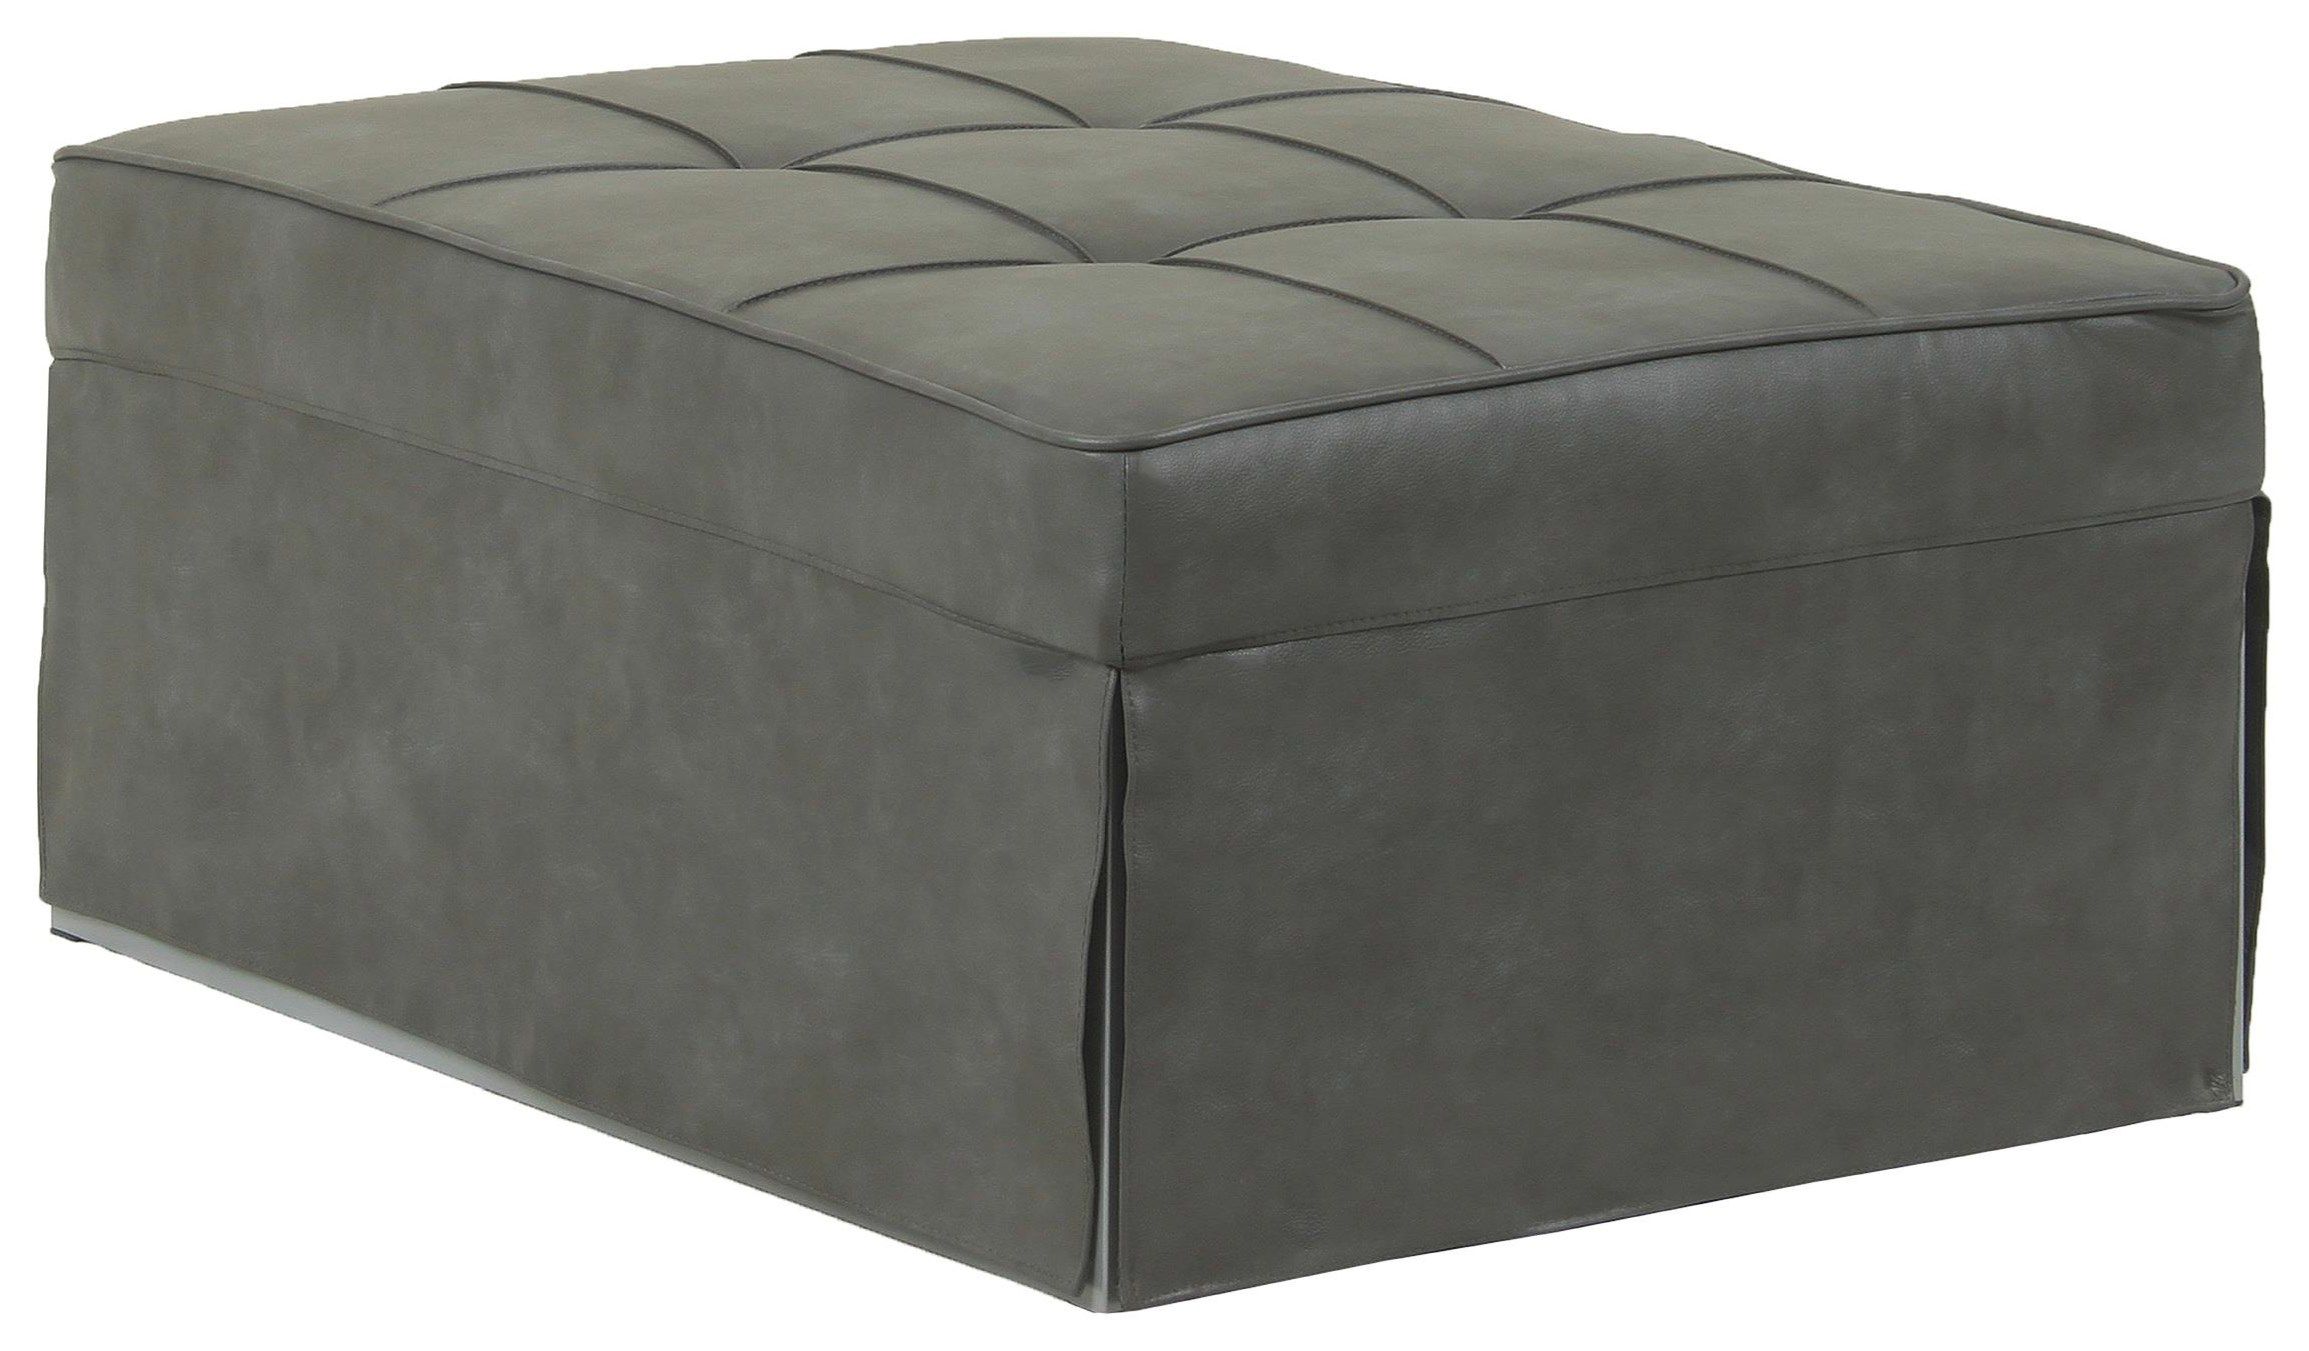 Sleepers Folding Sleeper Ottoman by Offshore Furniture Source at Sam Levitz Furniture